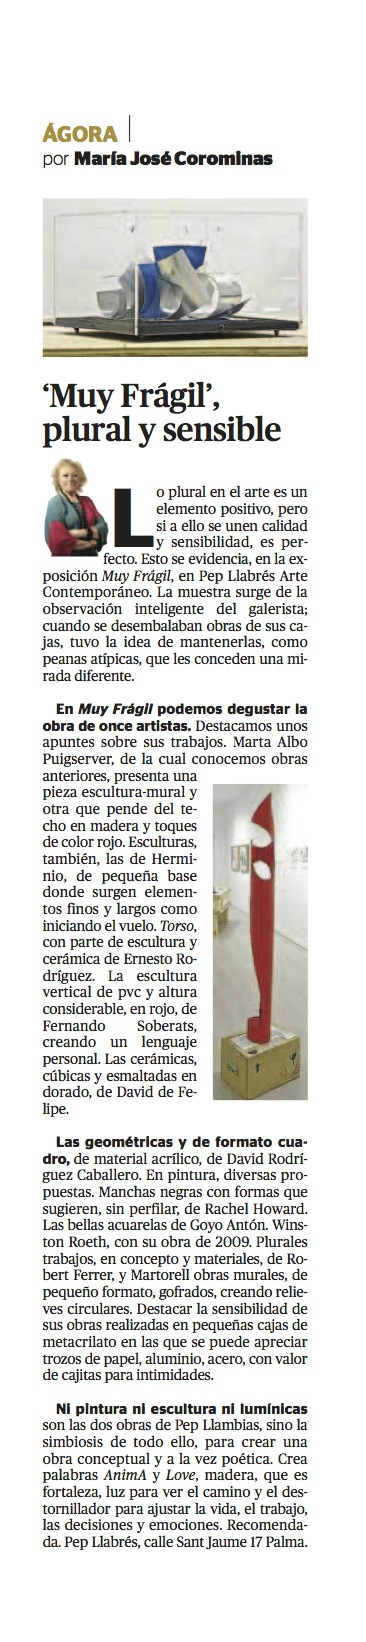 ARTICLE MARIA JOSE COROMINAS (14 FEB)